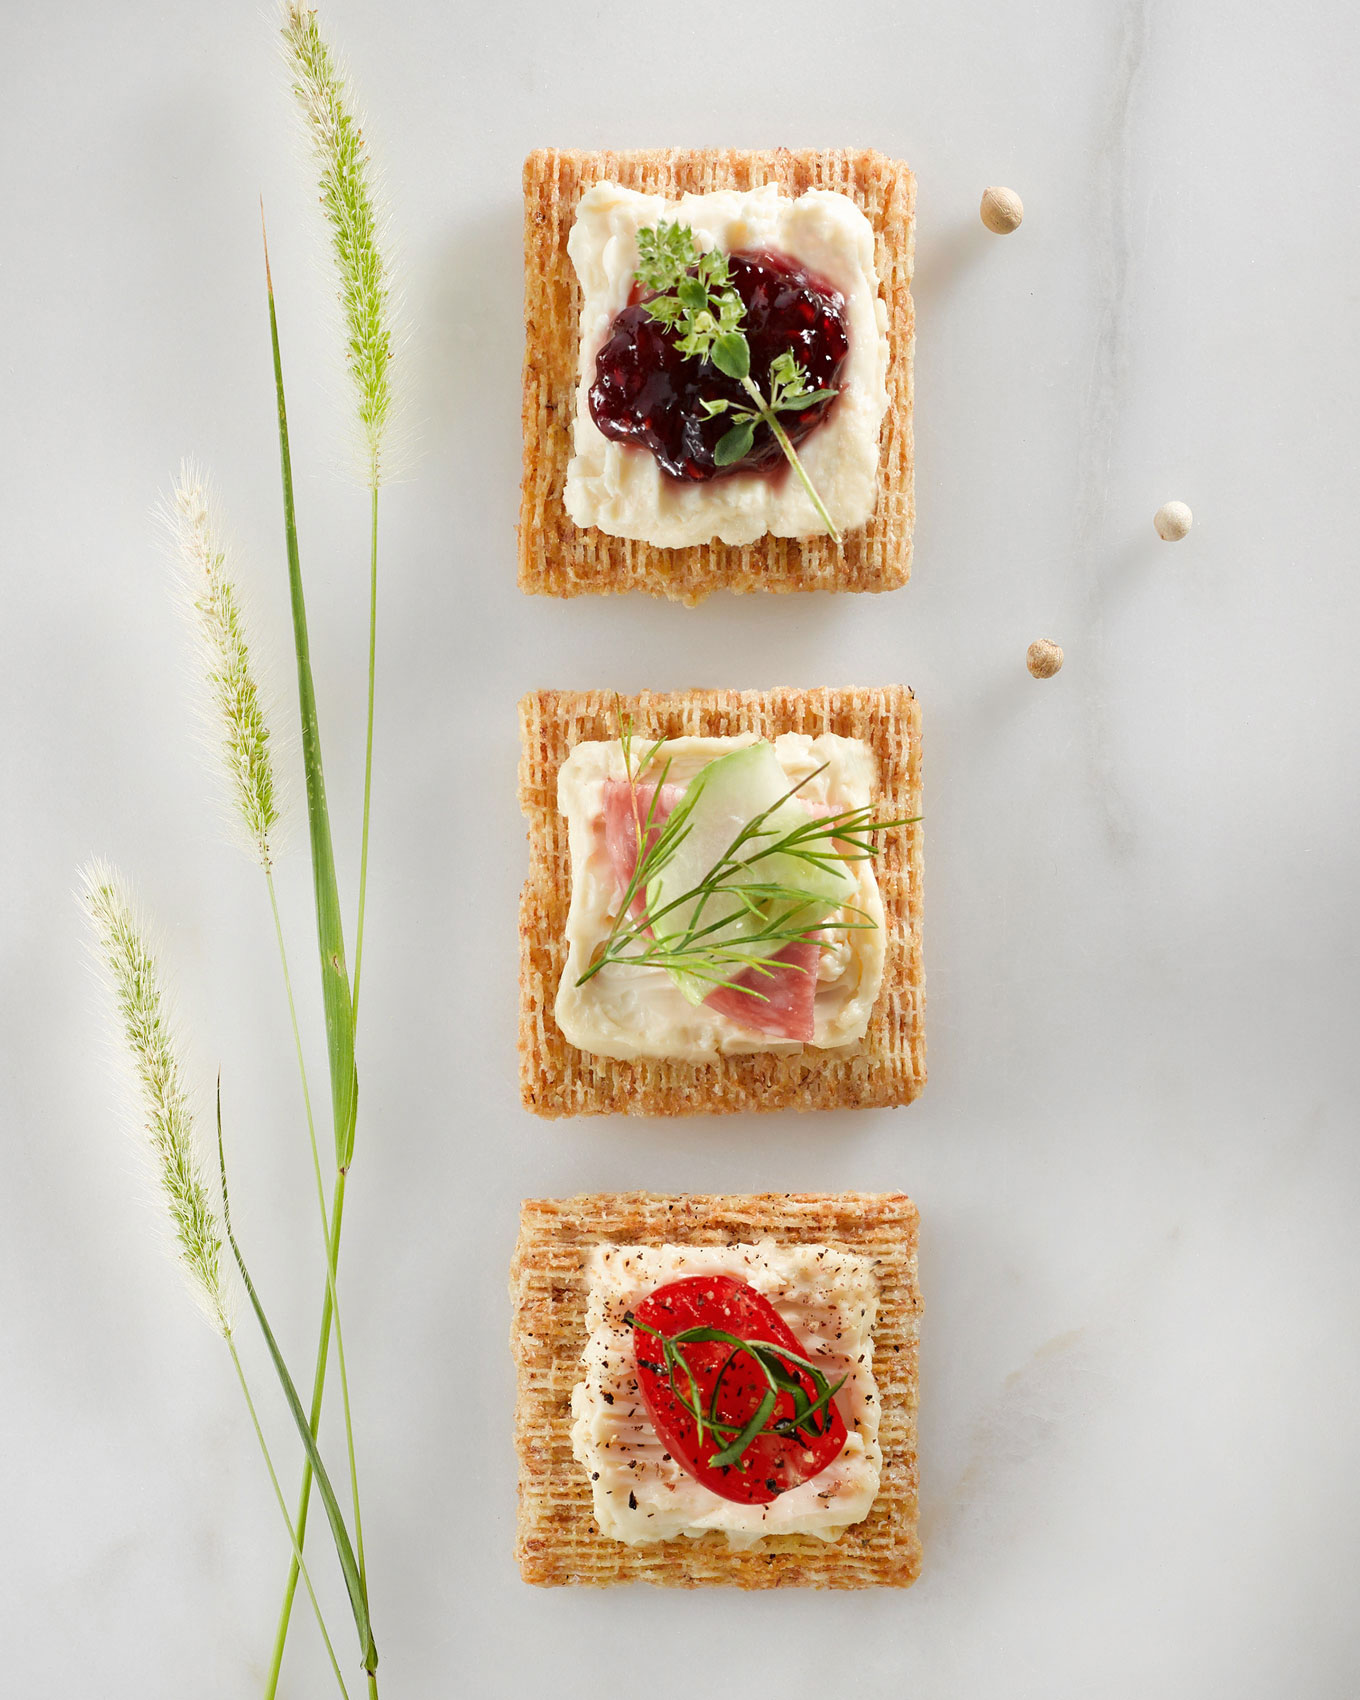 Bublys-Photograpy-cheese-triscuits-web2